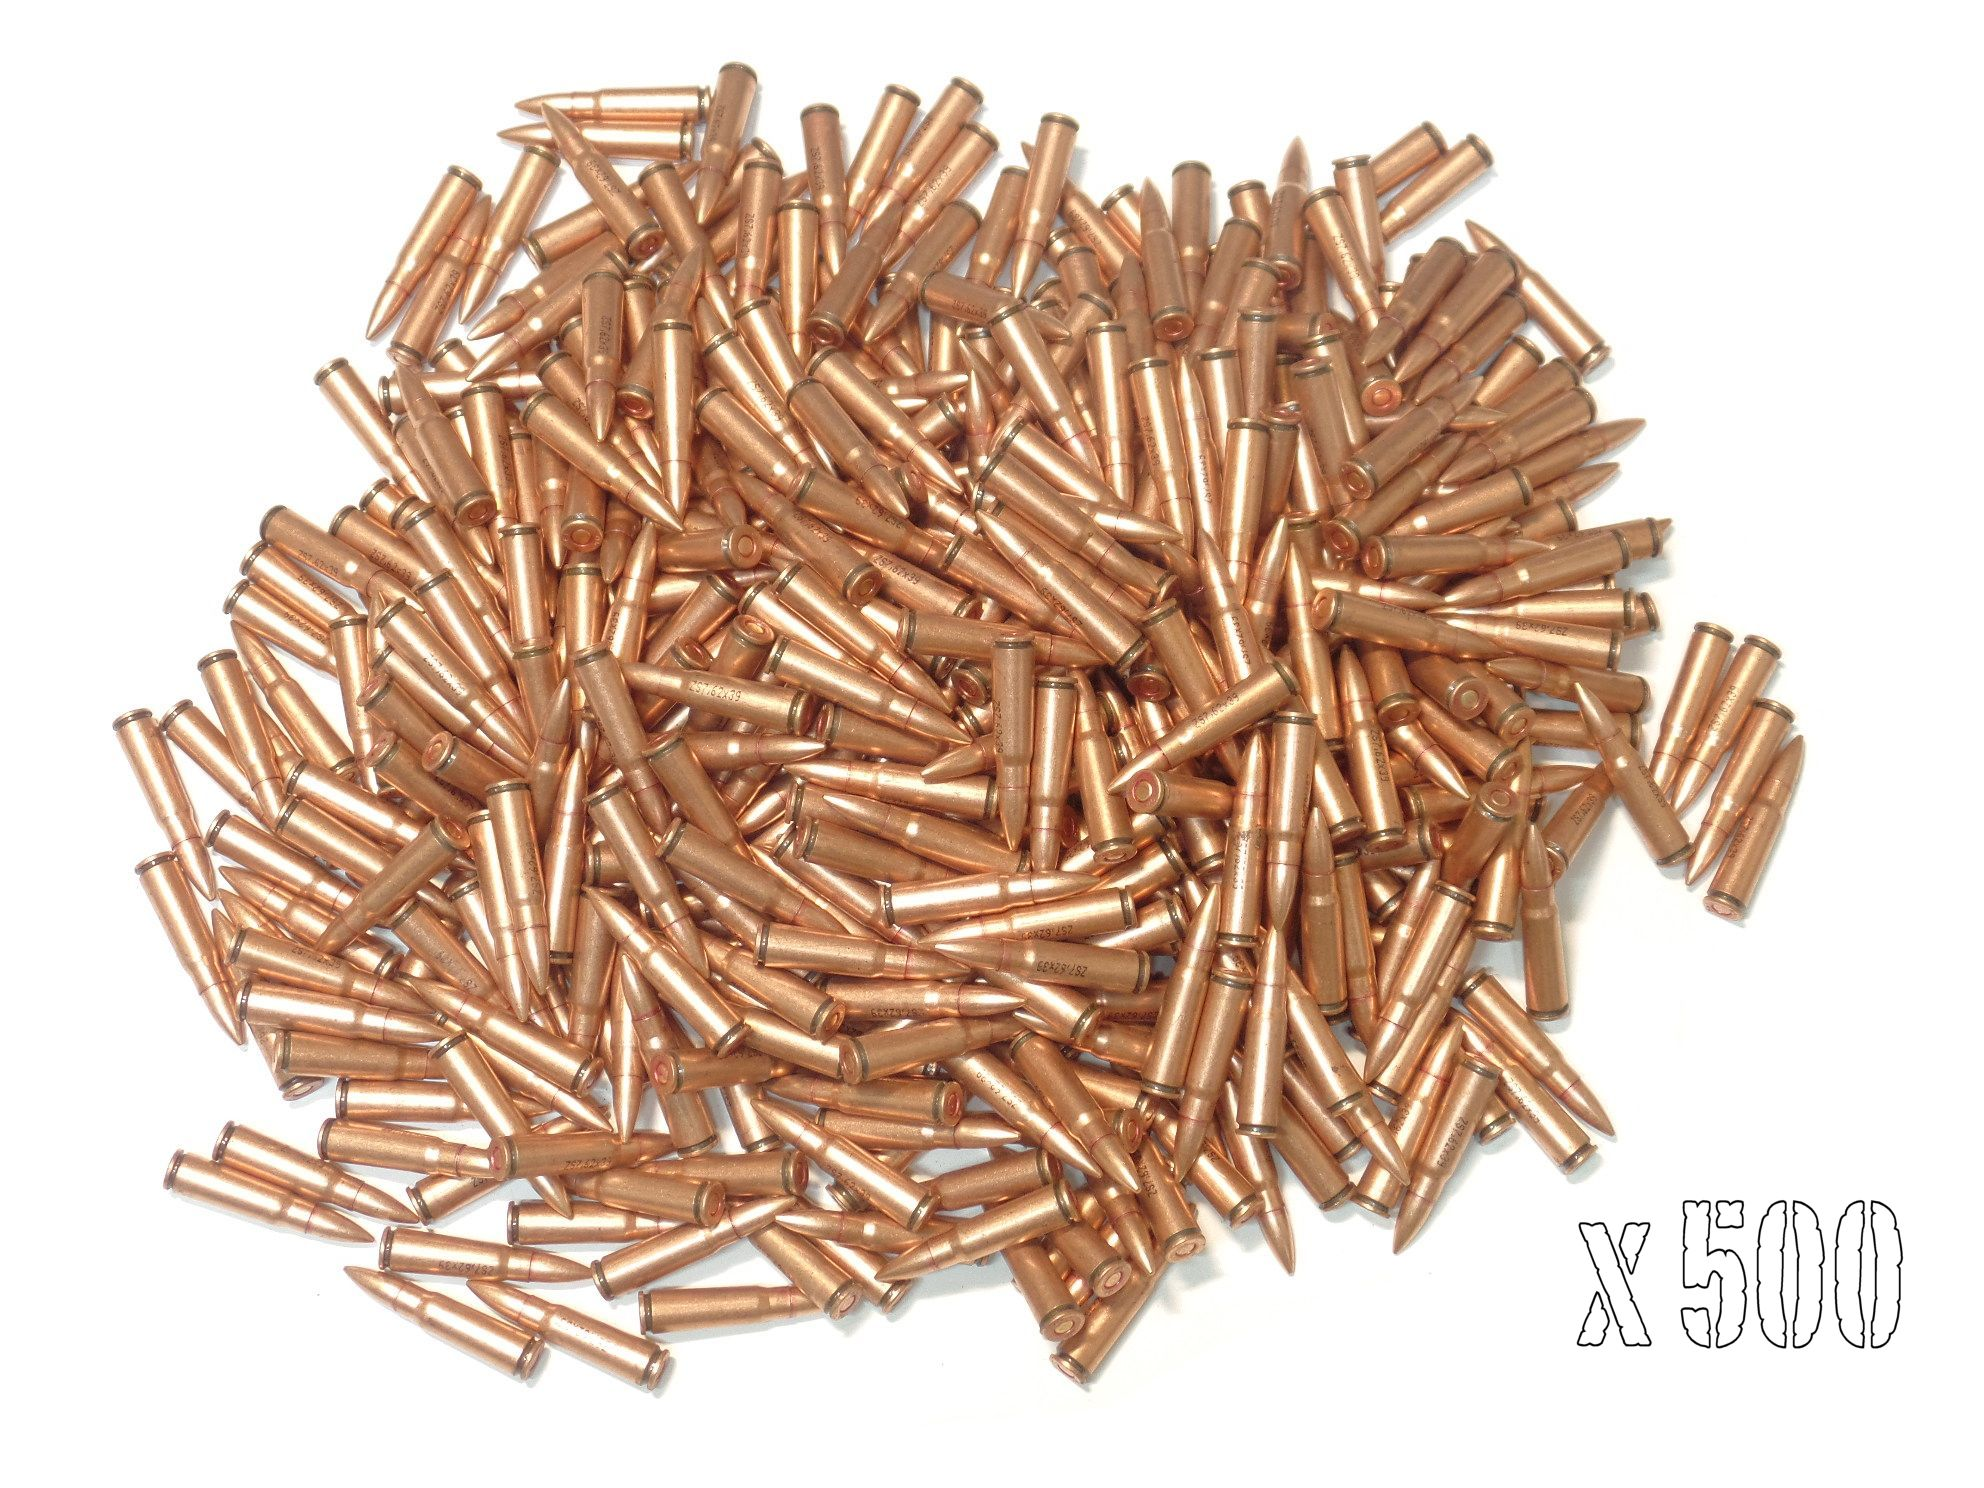 MUNITIONS x 500 calibre 7.62x39 SURPLUS